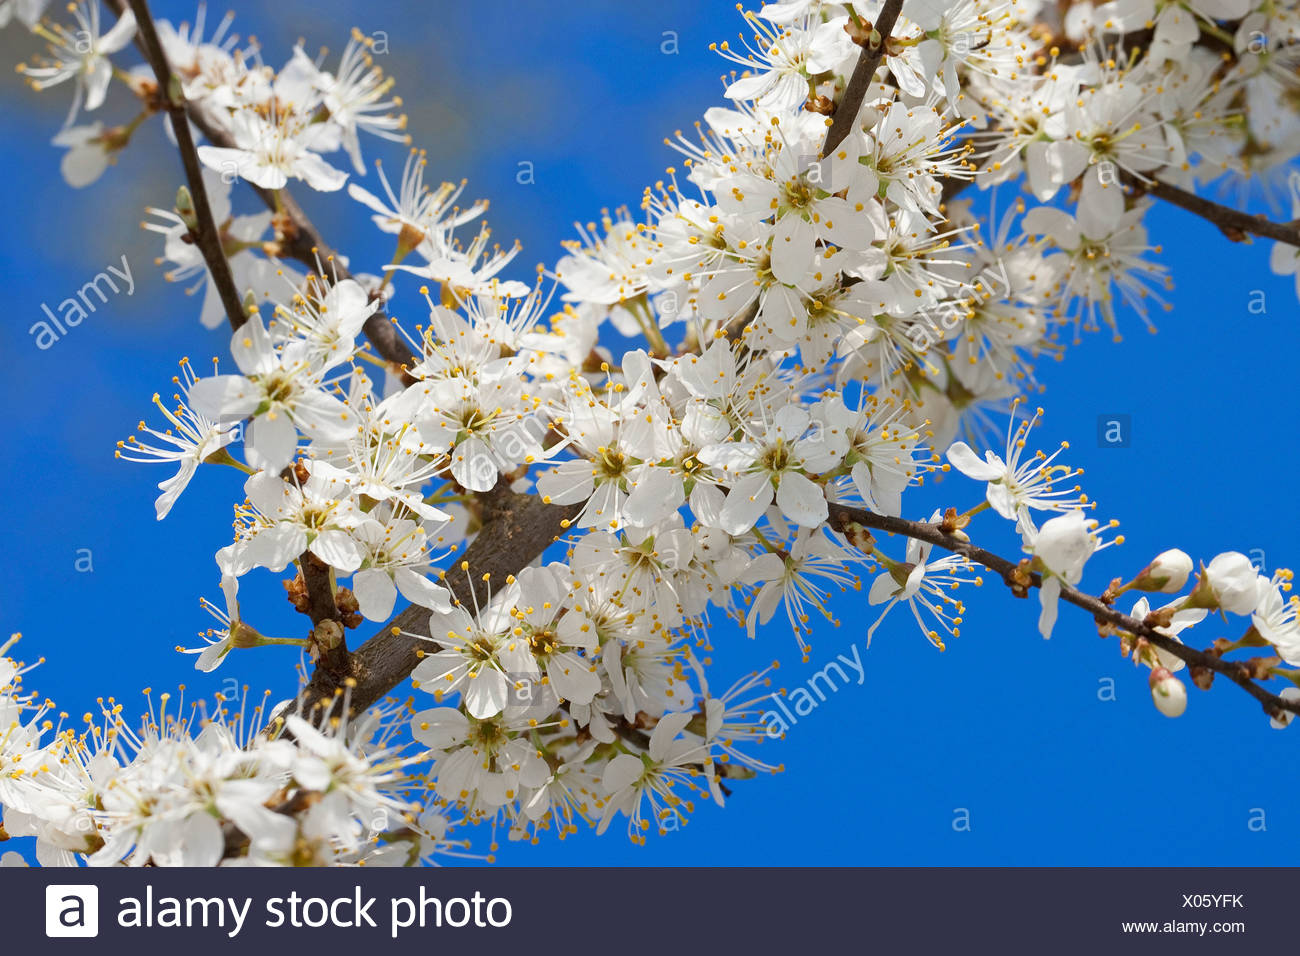 blackthorn, sloe (Prunus spinosa), blooming branches, Germany - Stock Image